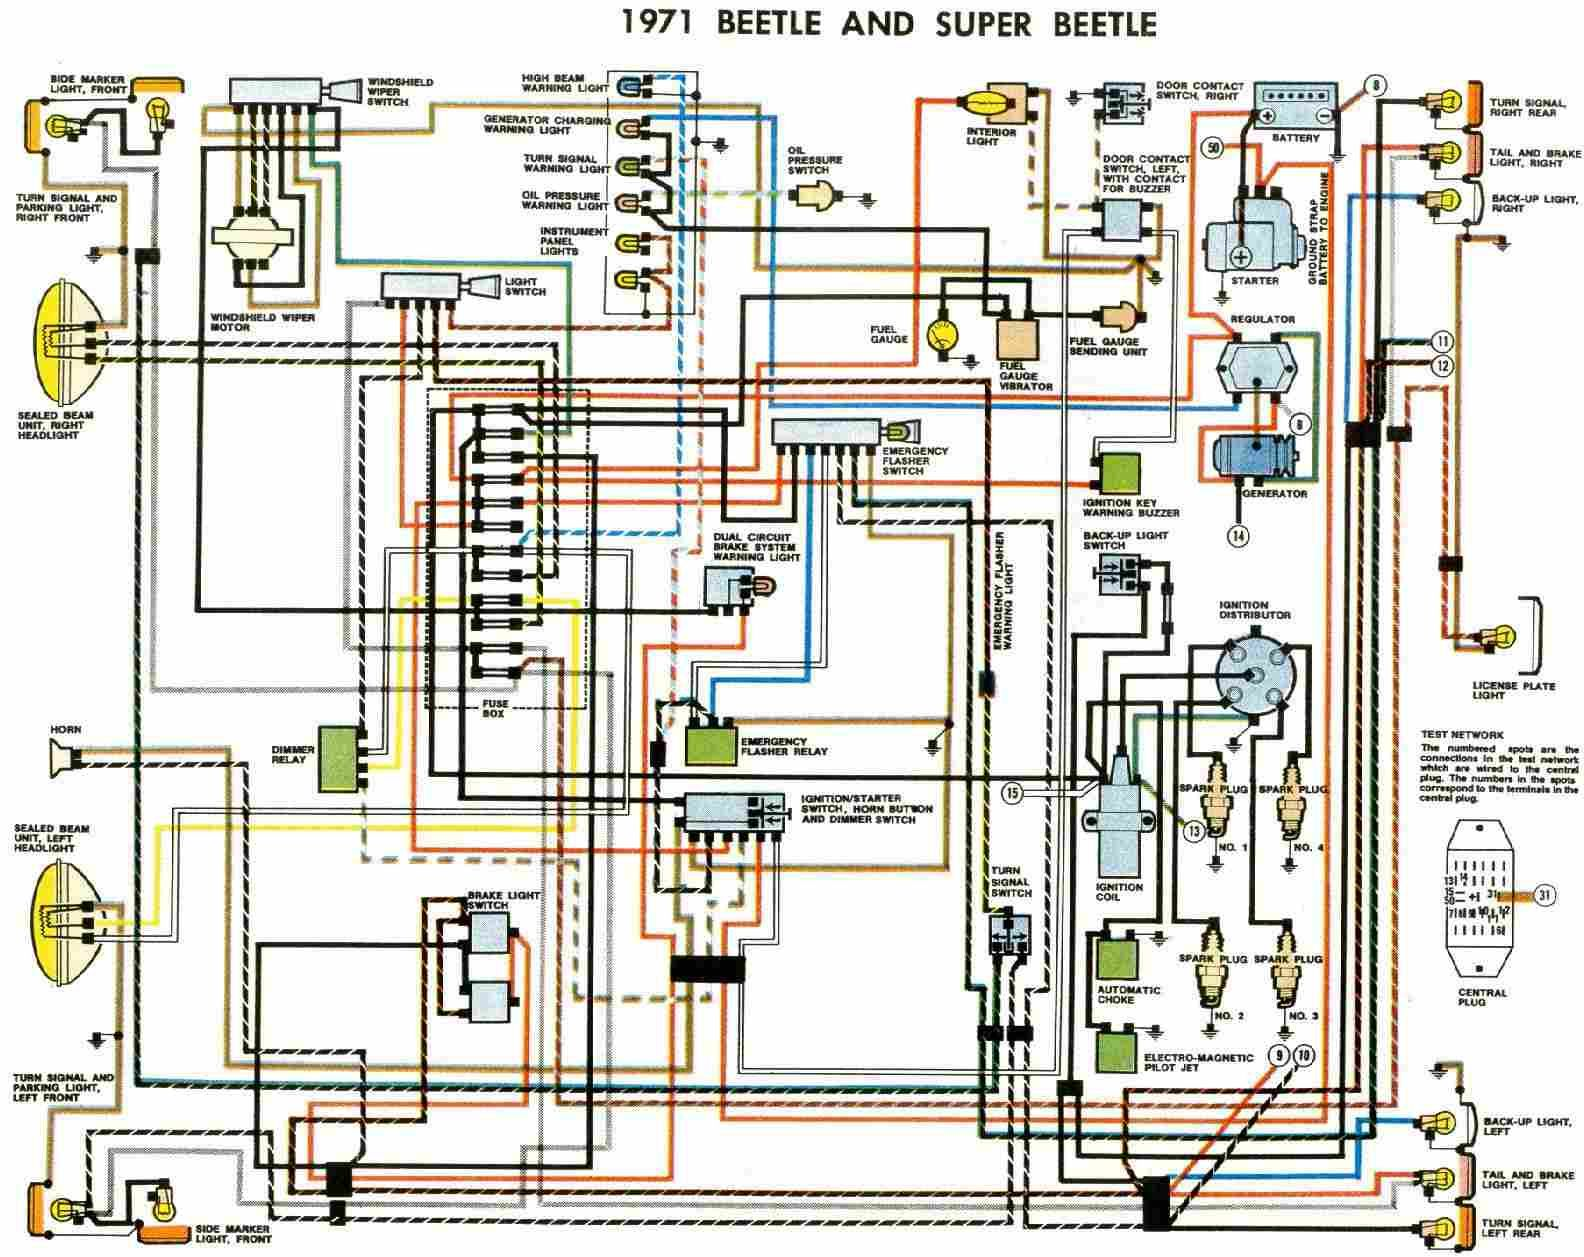 6379f2a777a0eb1b27fdba46670ceb6a free auto wiring diagram 1971 vw beetle and super beetle byocar 1971 vw bus wiring diagram at webbmarketing.co